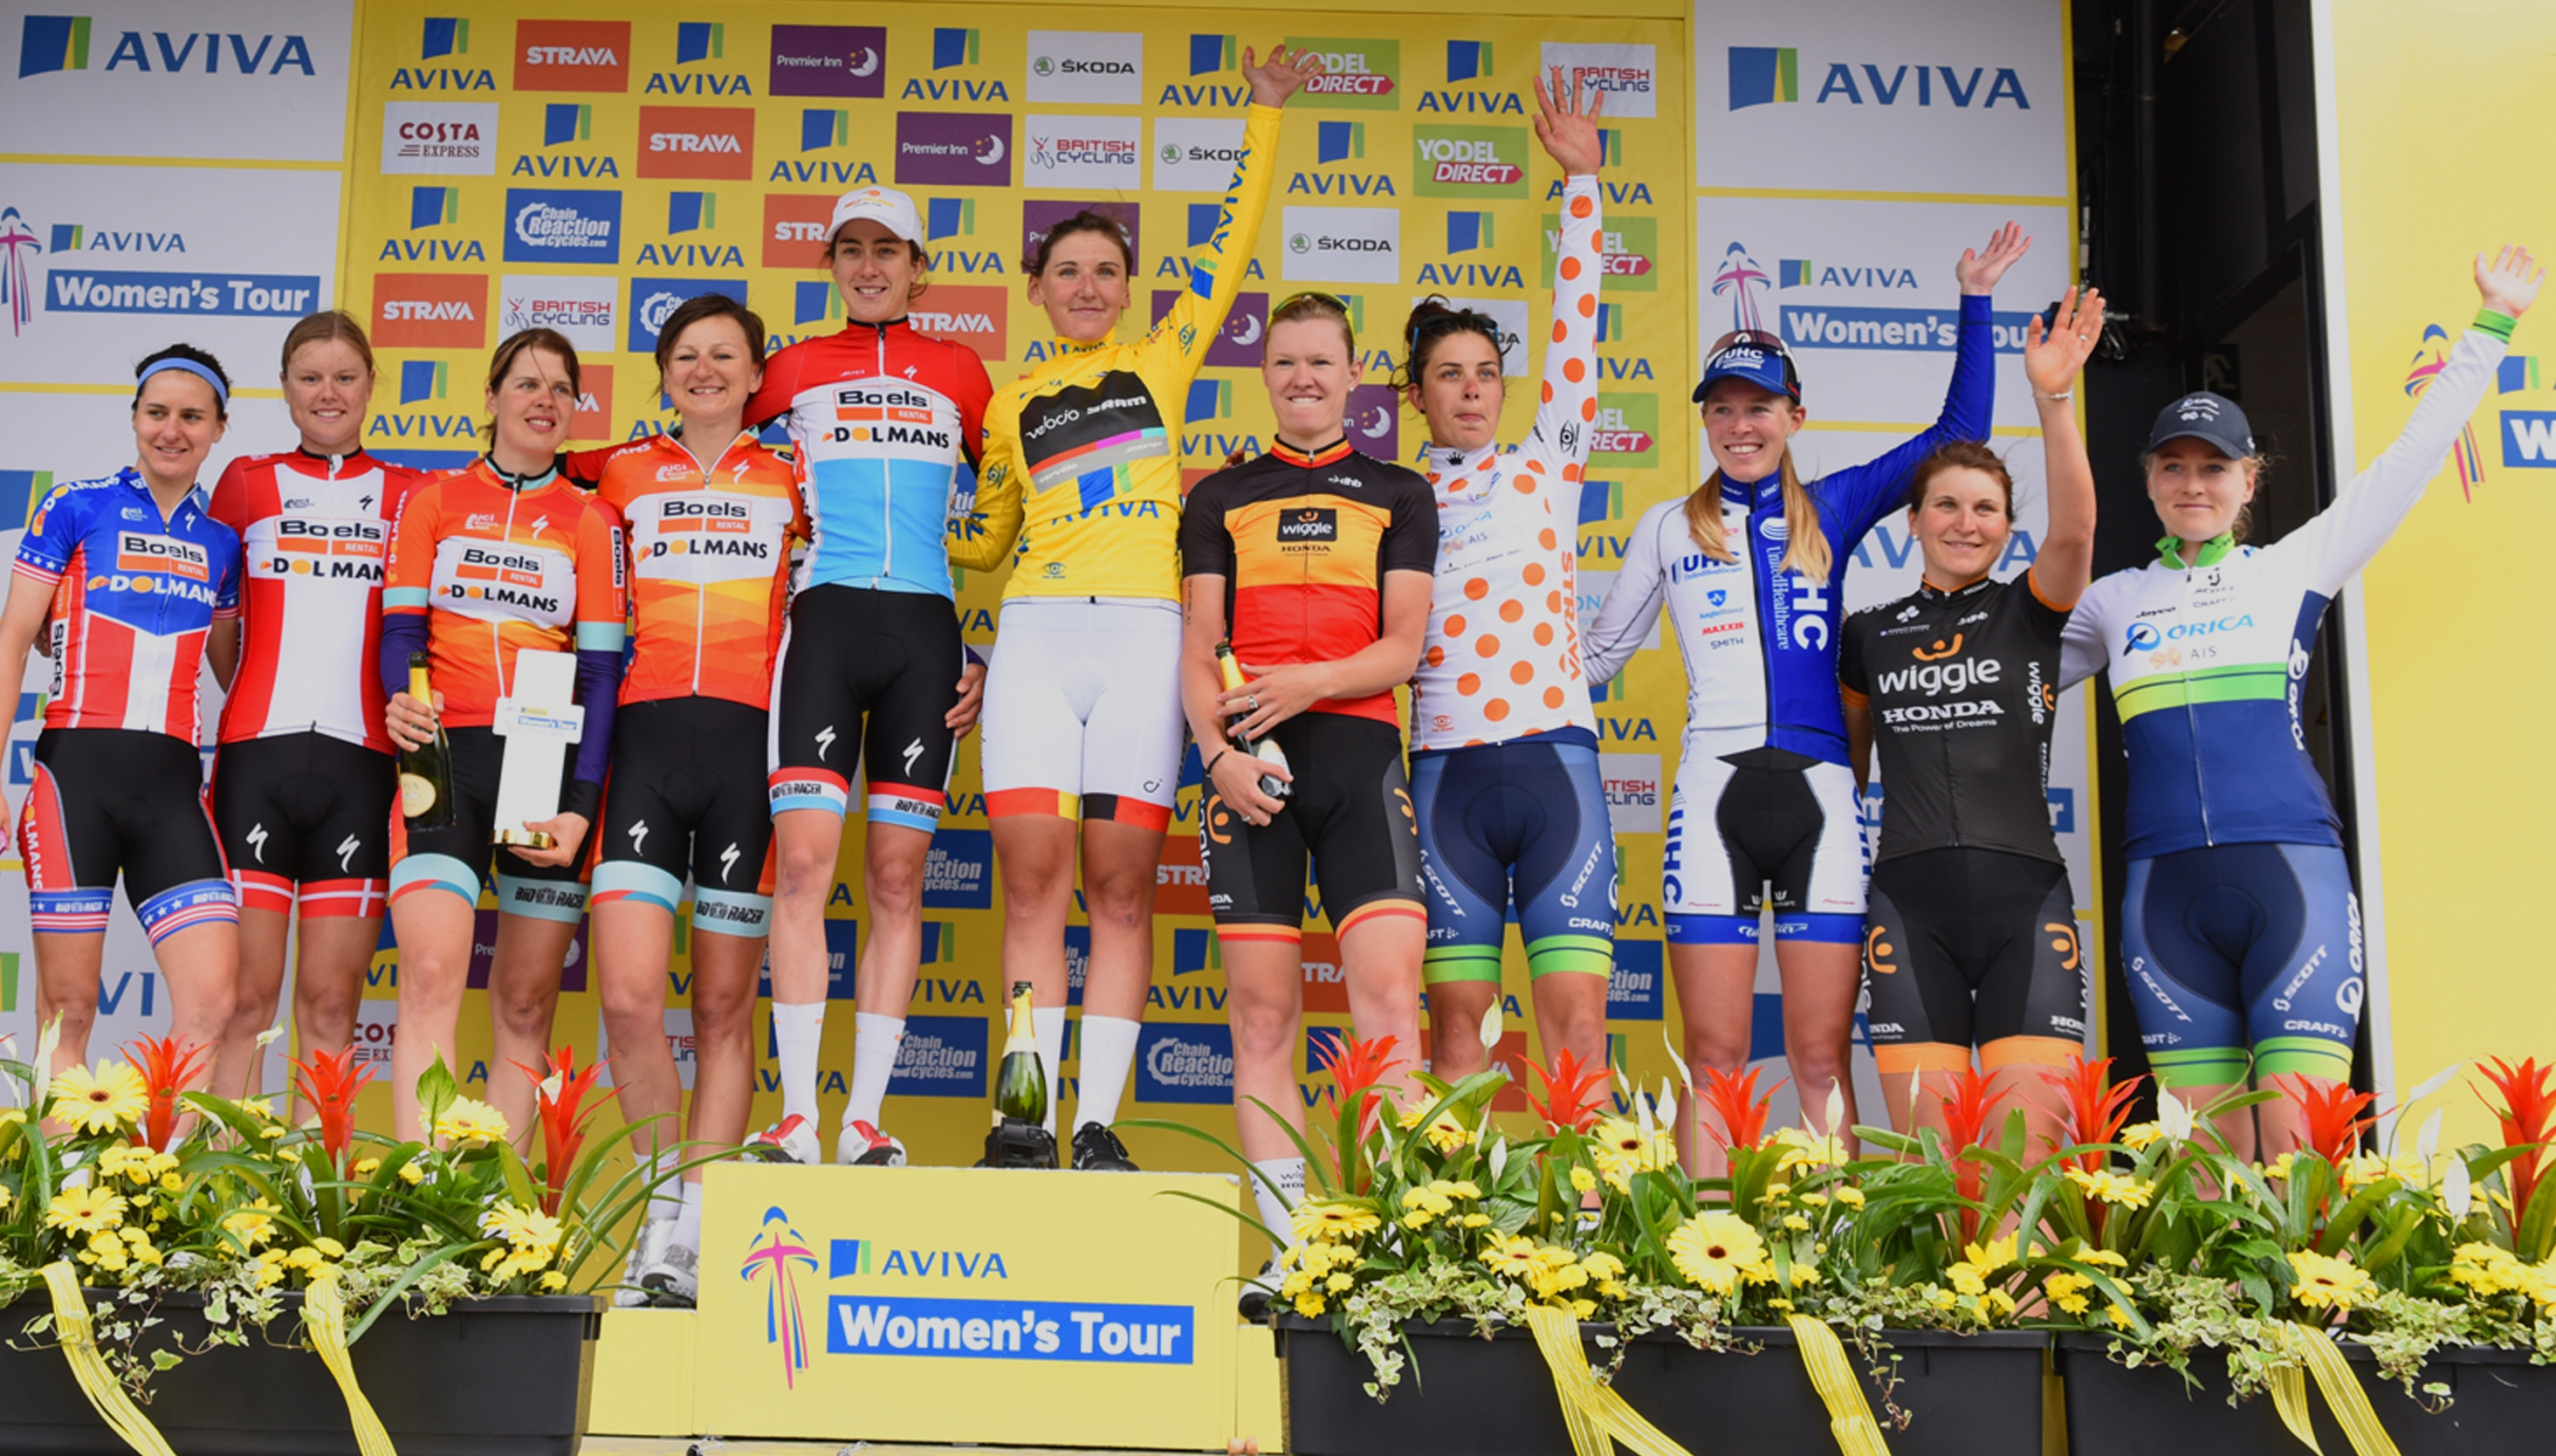 Quotes: Riders and teams look ahead to the 2016 Aviva Women's Tour